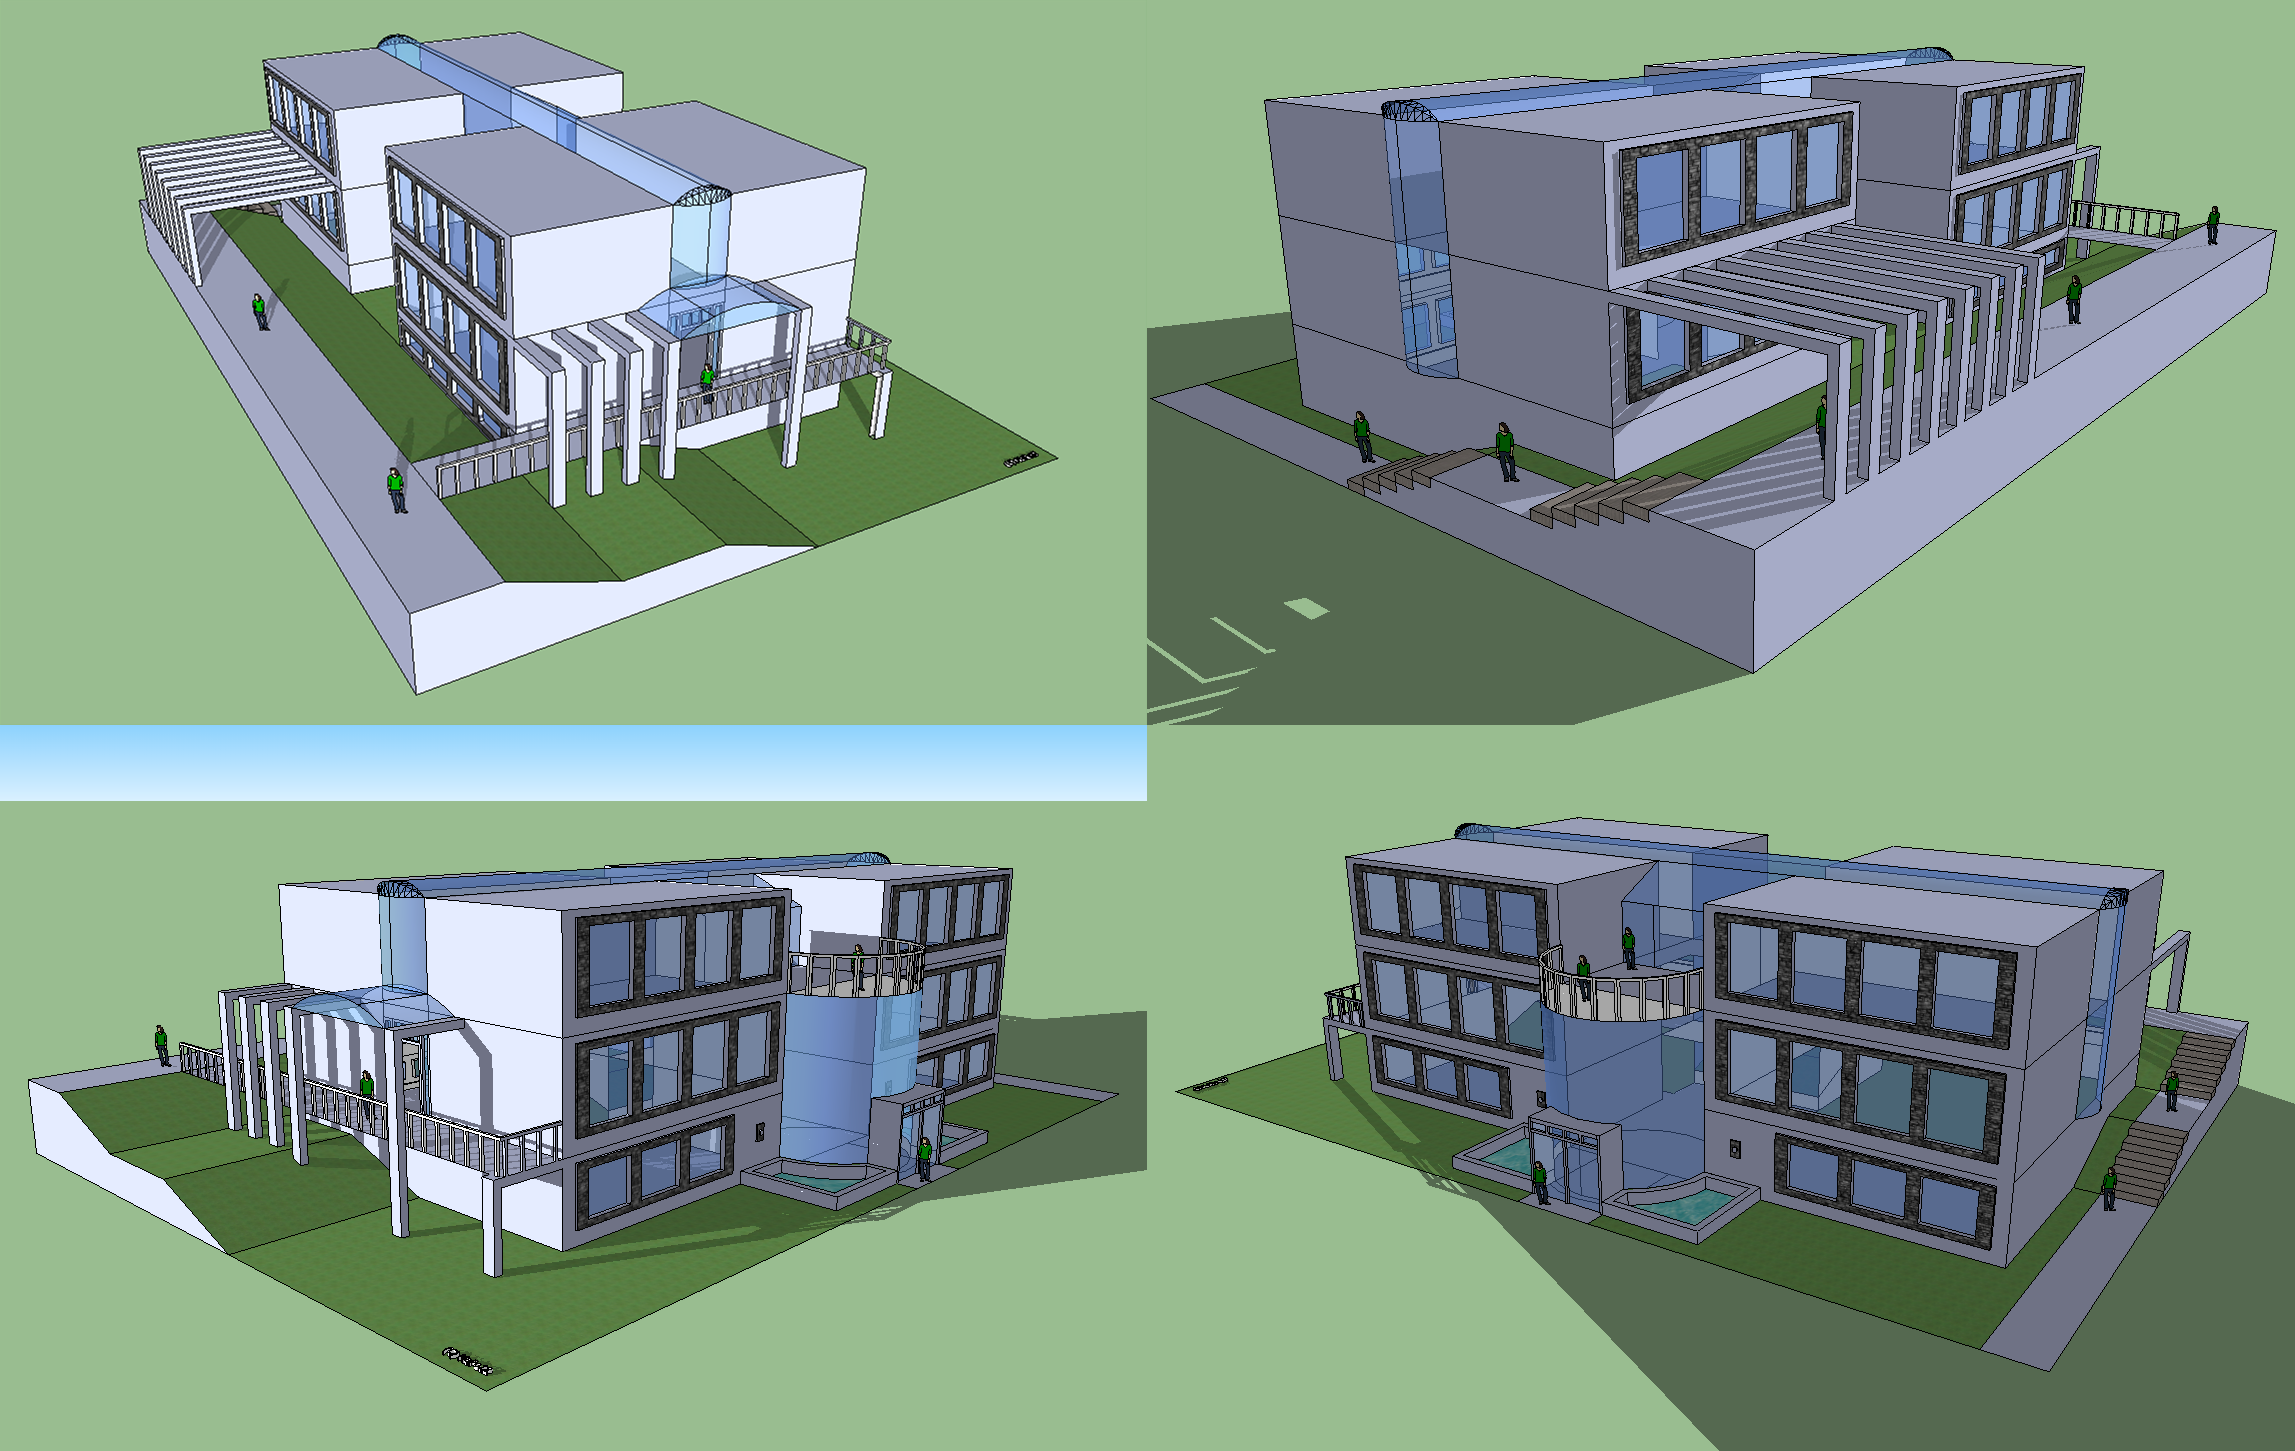 School building by mapo12 on deviantart for Building plans images